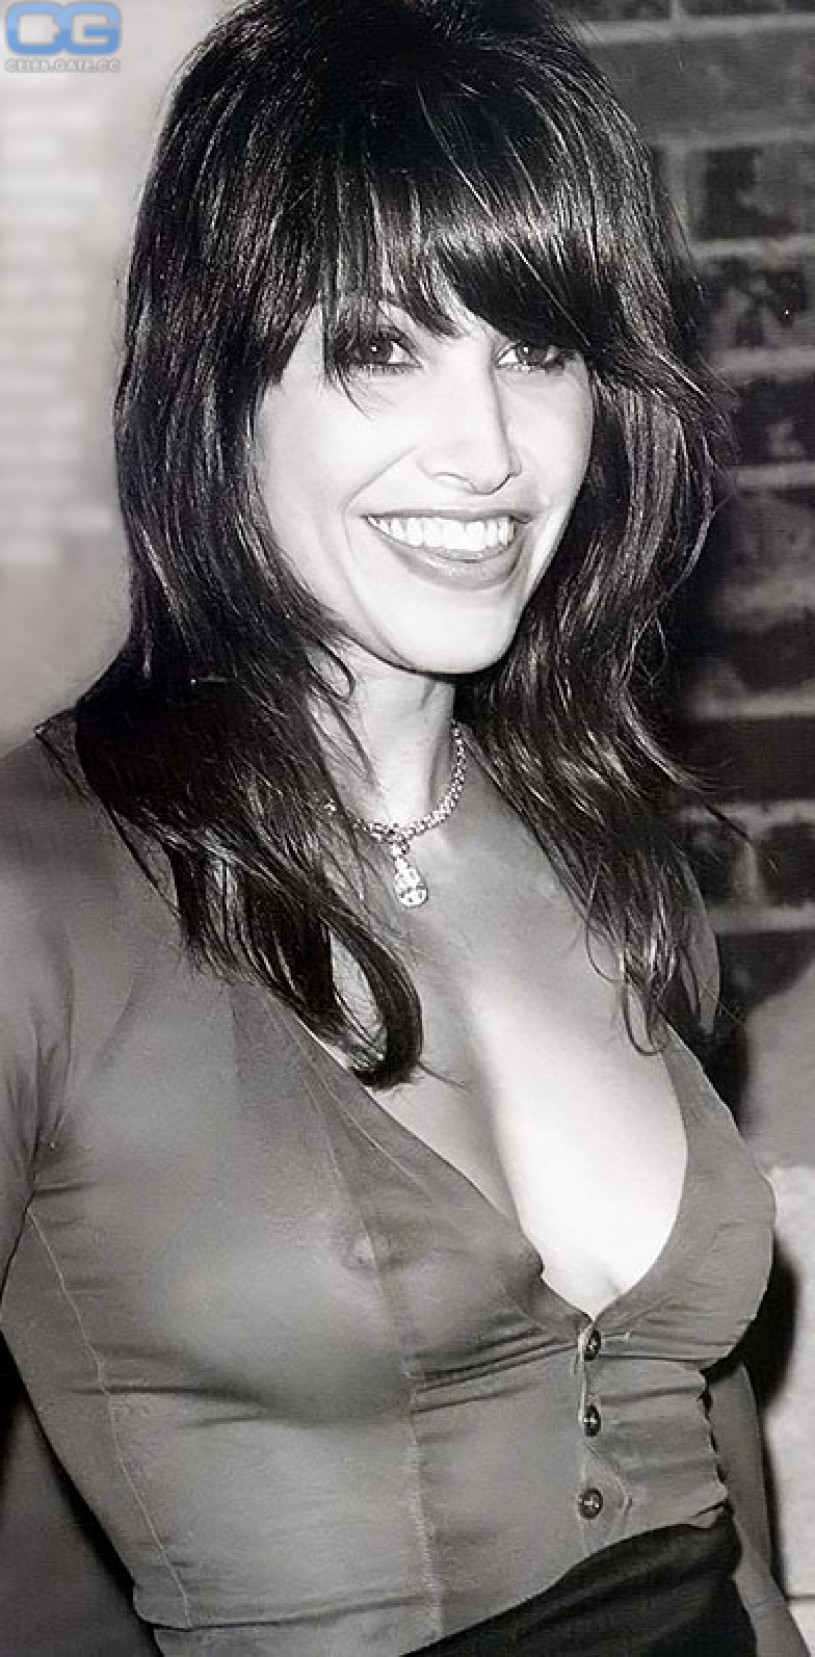 Gina gershon sexy remarkable, rather